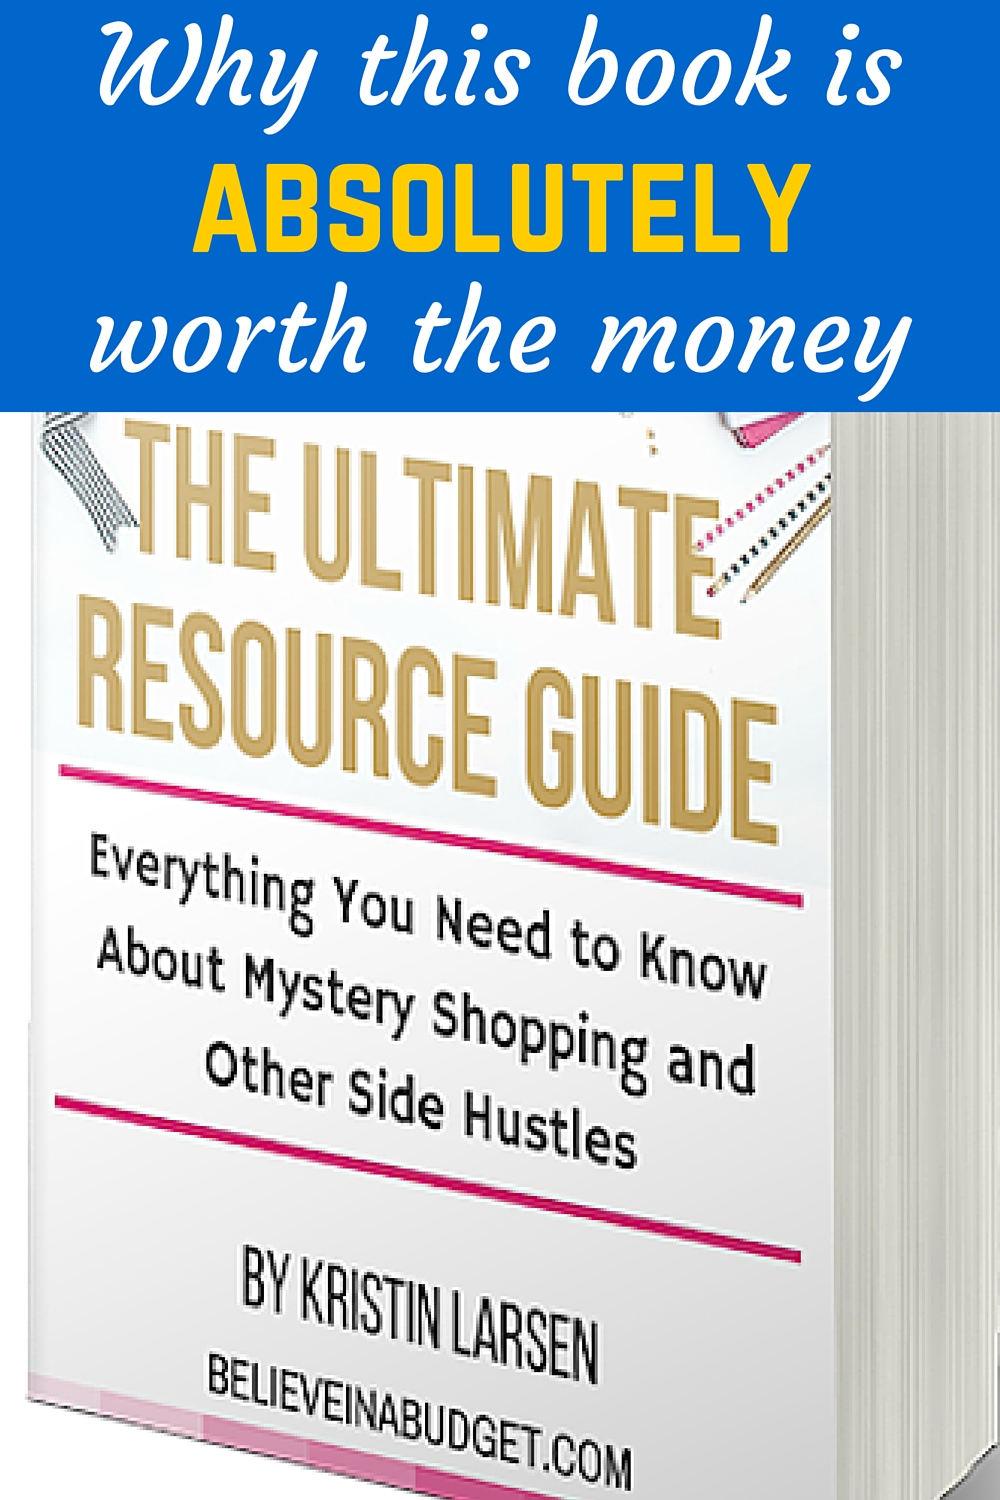 I don't normally recommend paying for this kind of information. So when I say thatThe Ultimate Resource Guide is worth the money, you know to take it seriously.